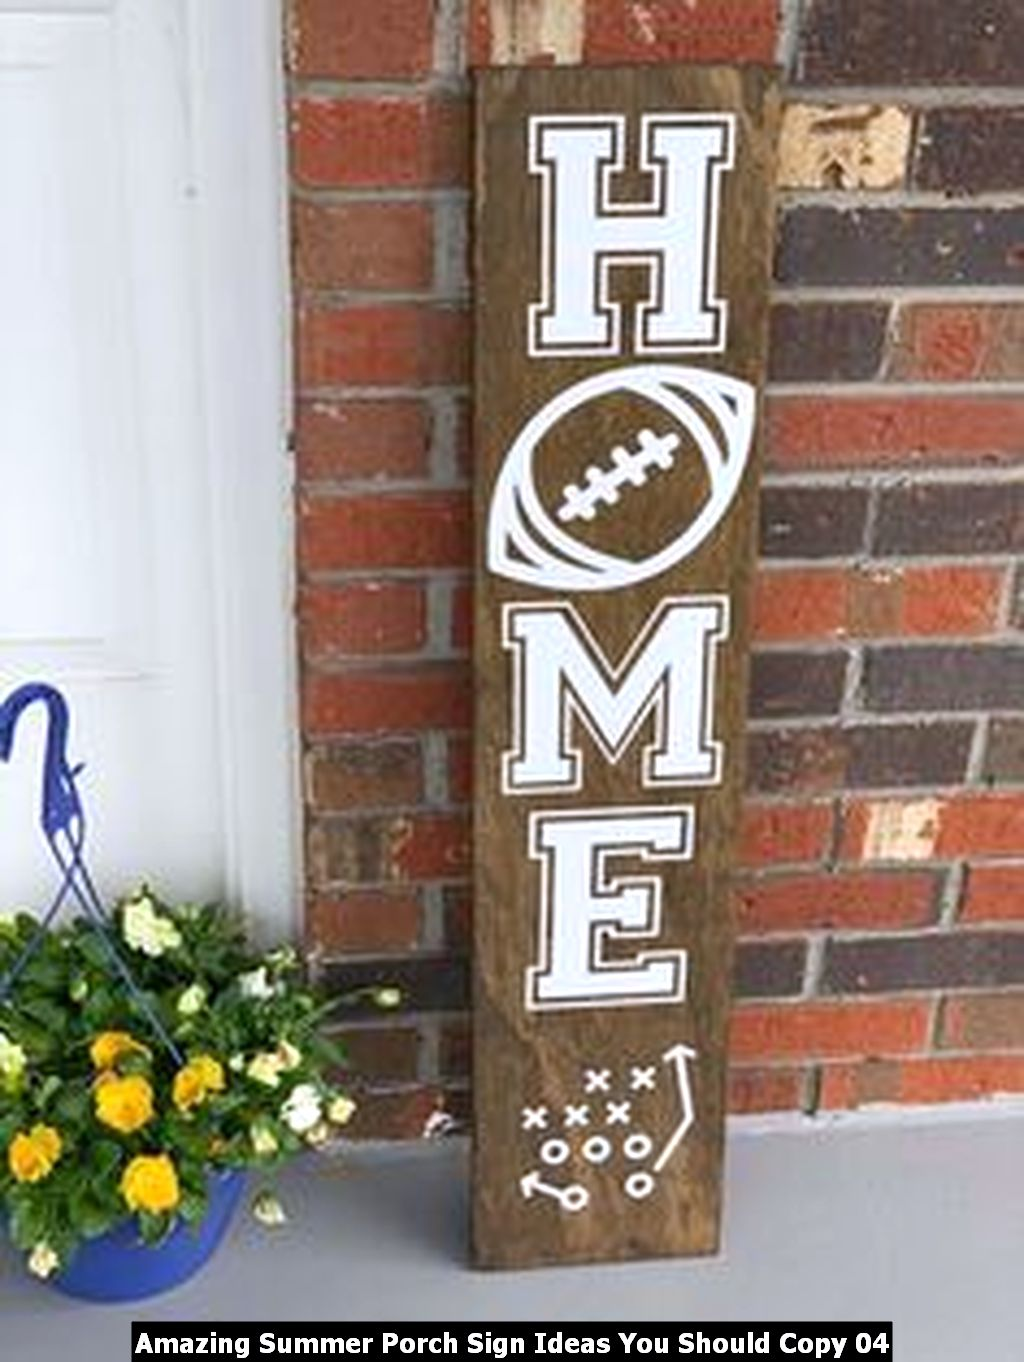 Amazing Summer Porch Sign Ideas You Should Copy 04